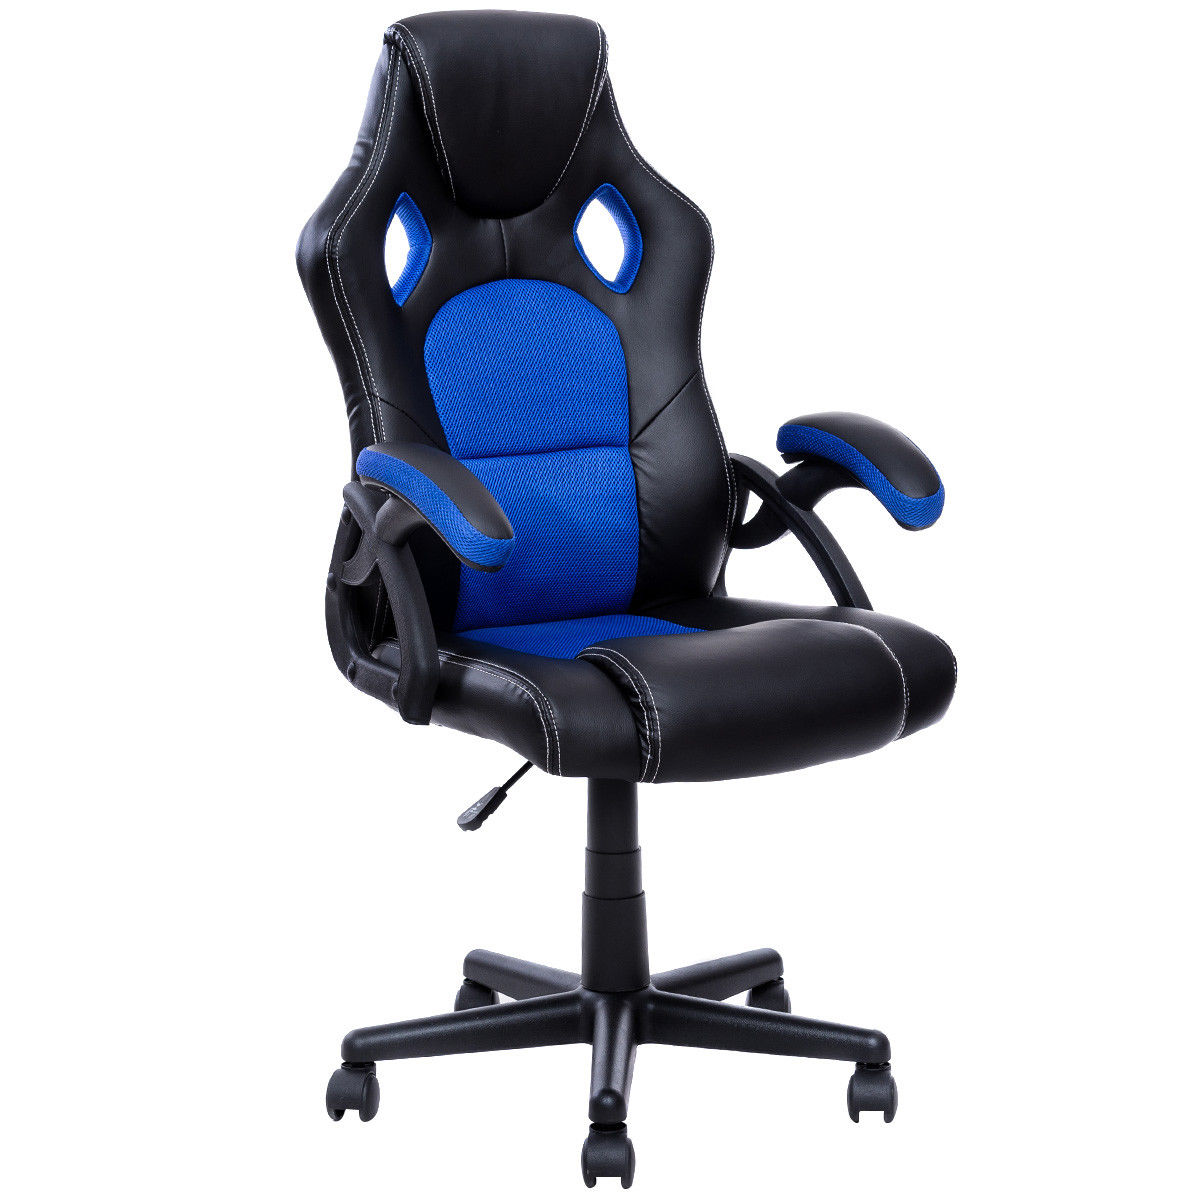 Pu Leather Executive Bucket Seat Racing Style Office Chair Computer on blue race car desk chair, retro style office chair, racing computer chair, racing furniture, camaro racing car office chair, antique style office chair, audi racing office chair, gt omega pro racing office chair, sitting in a chair, racing seats, racing chair xbox one, western style office chair, car style office chair, racing style swivel chair,